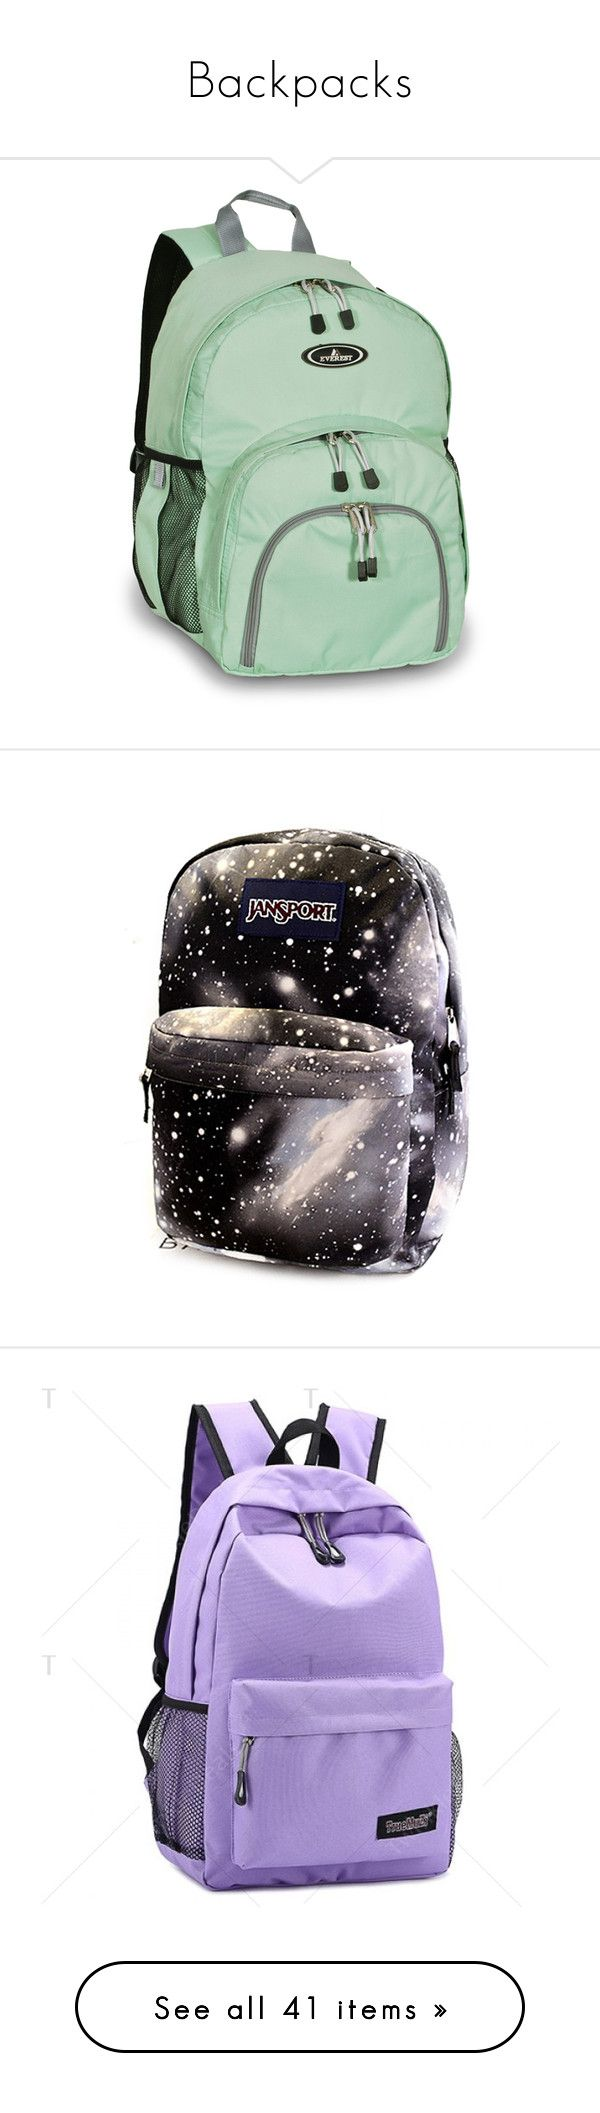 """""""Backpacks"""" by arstymolly ❤ liked on Polyvore featuring bags, backpacks, blue, day pack backpack, green backpack, sporty backpacks, lightweight backpack, lightweight daypack, accessories and black"""